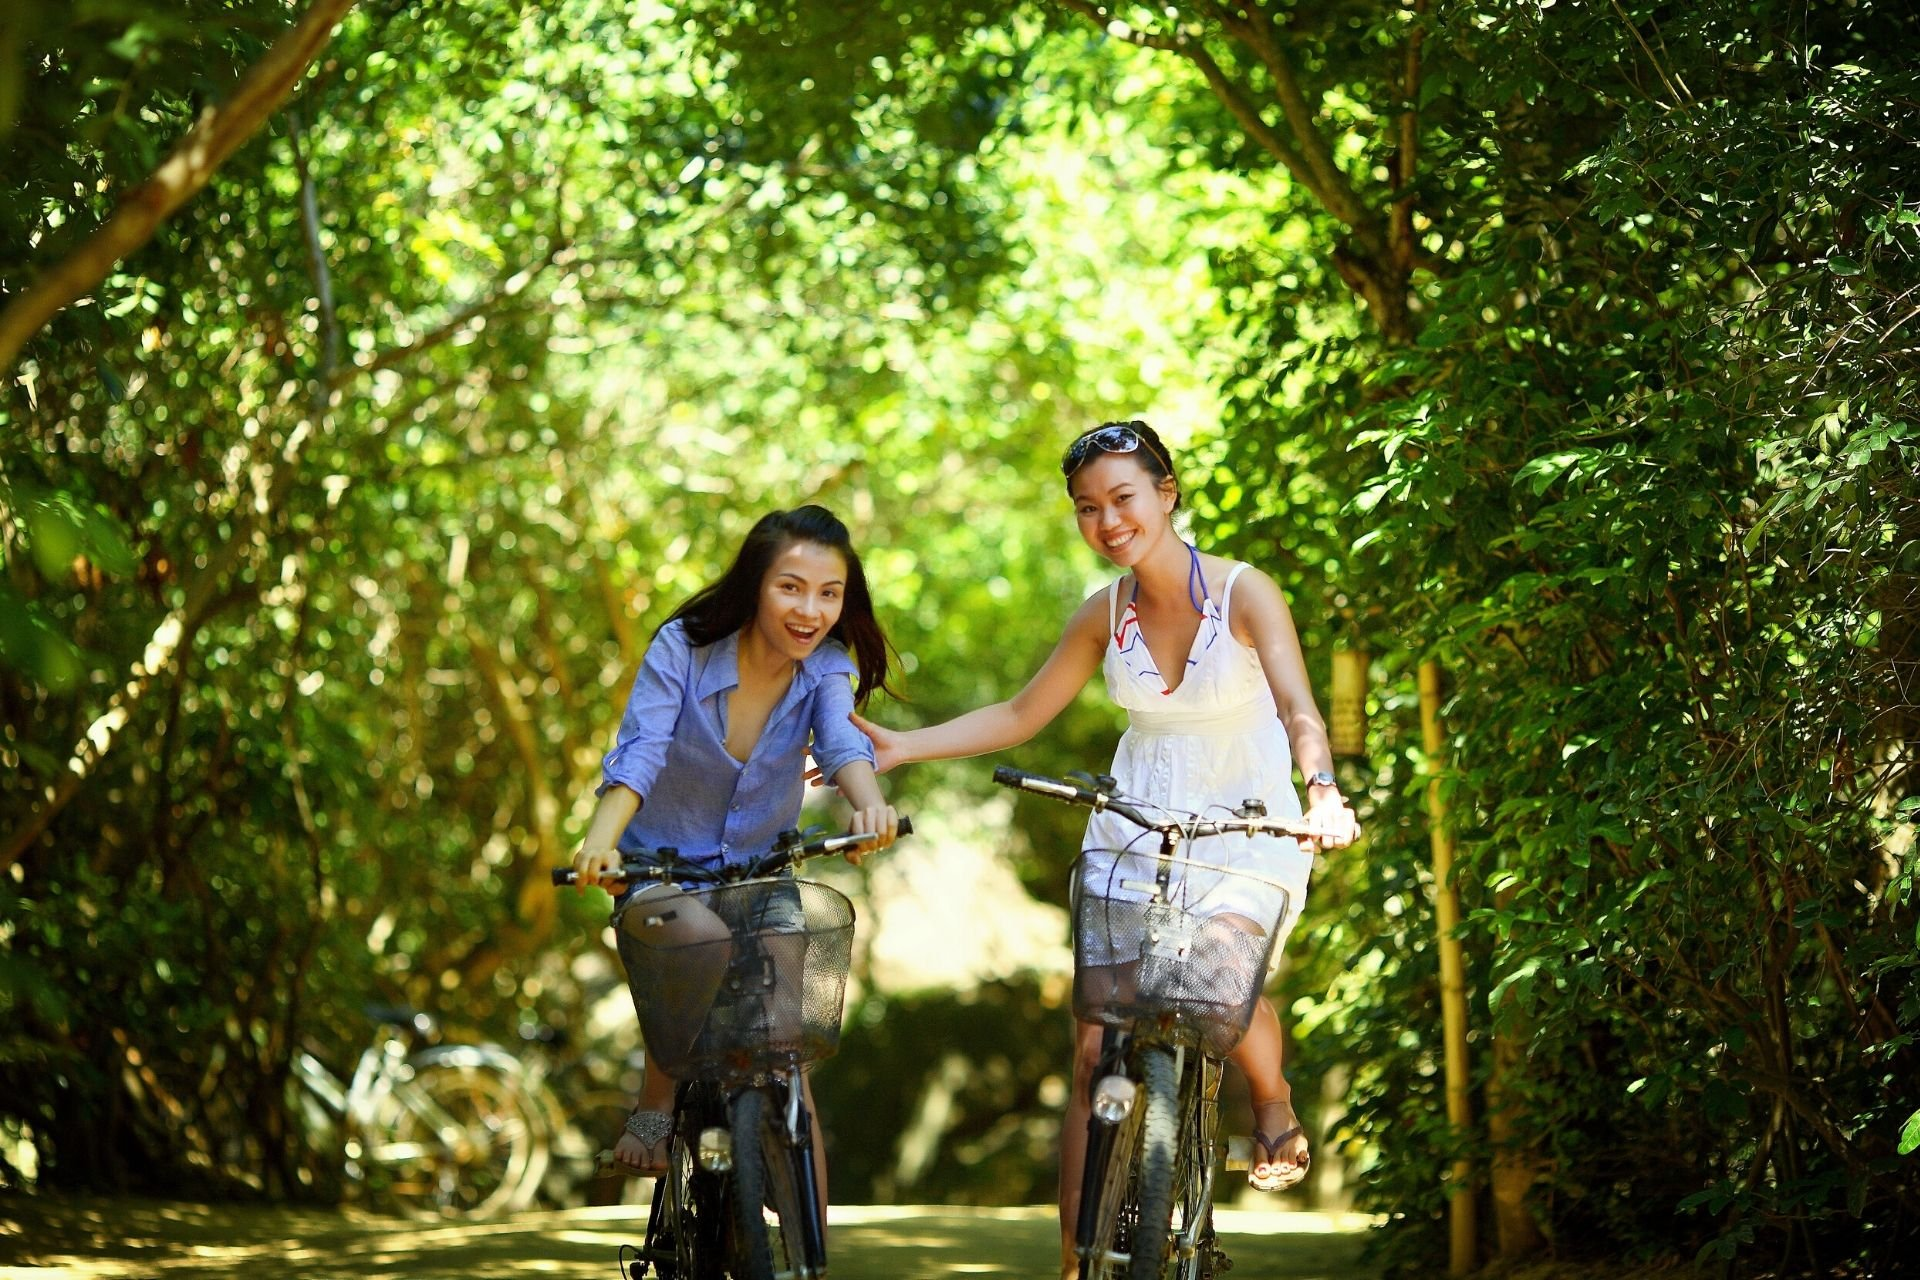 two women riding bikes surrounded by nature